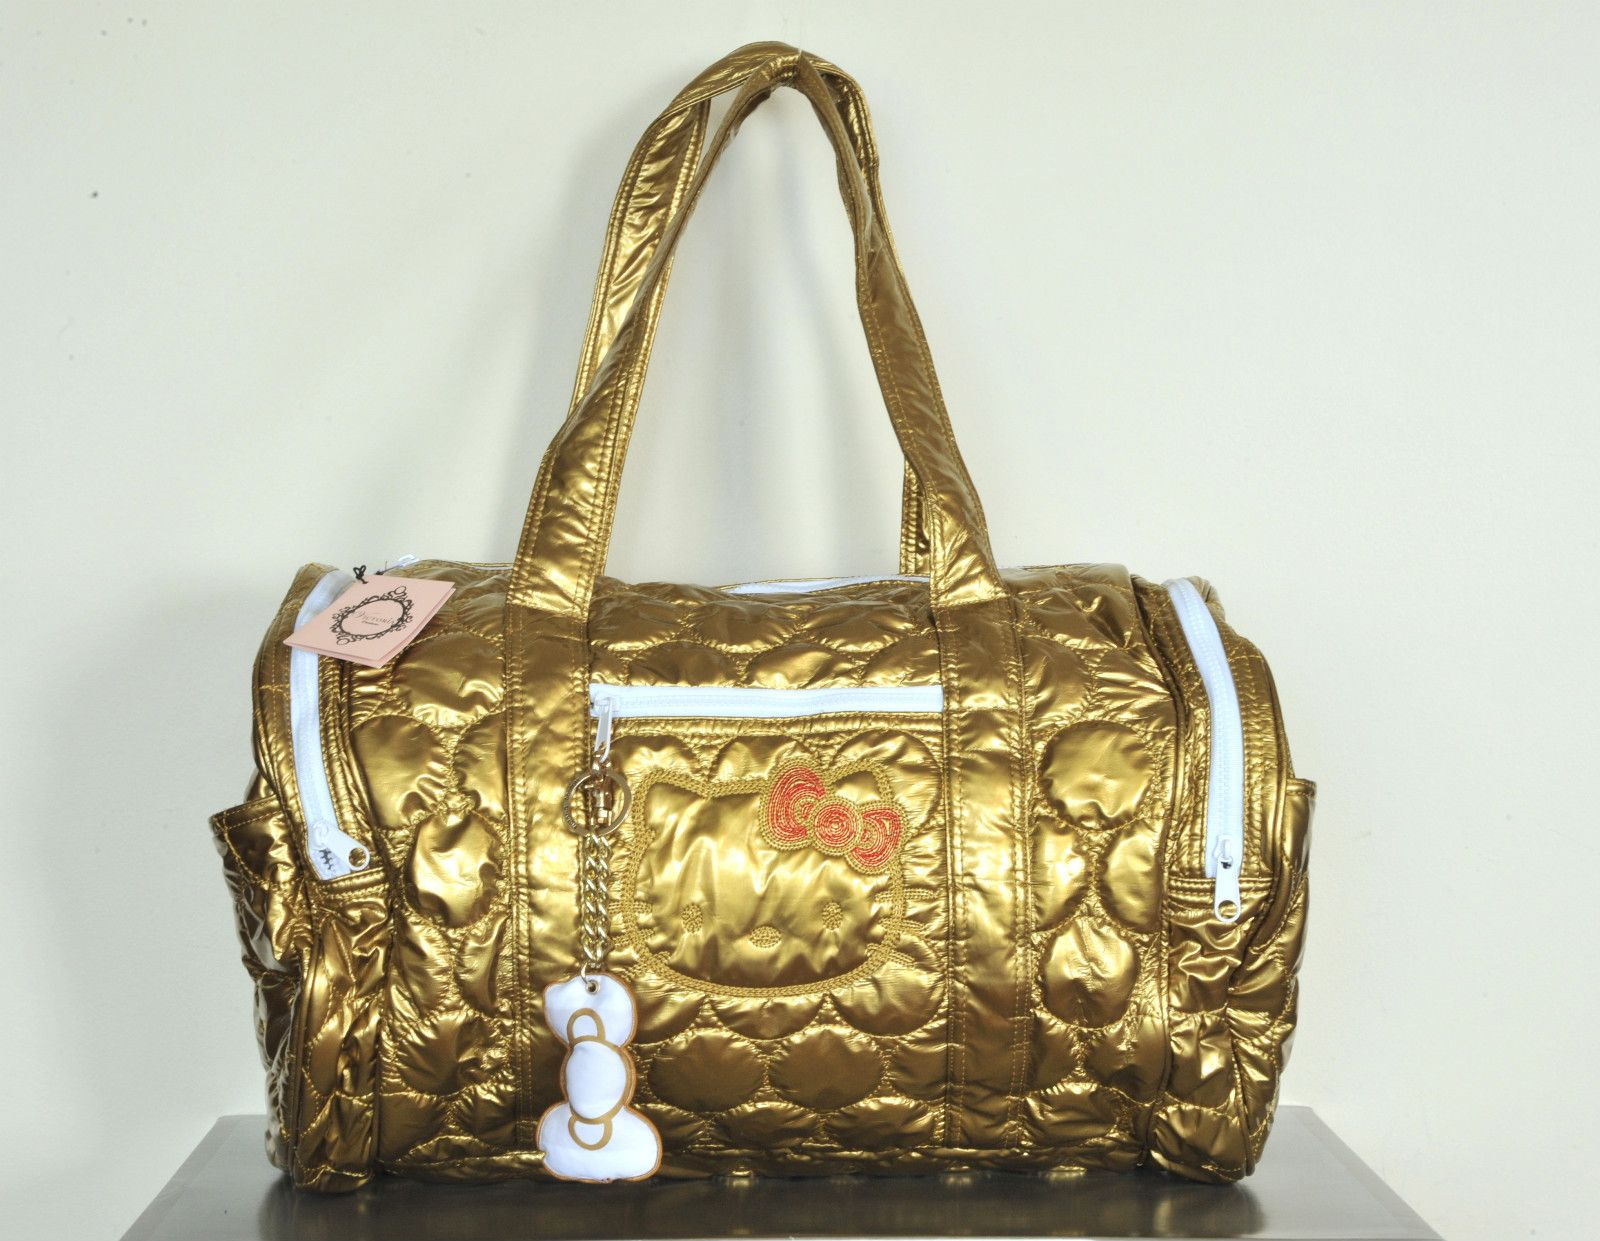 HELLO KITTY SANRIO VICTORIA COUTURE LARGE GOLD DUFFLE CARRY ON LUGGAGE NEW  NWT 26ecab5daa